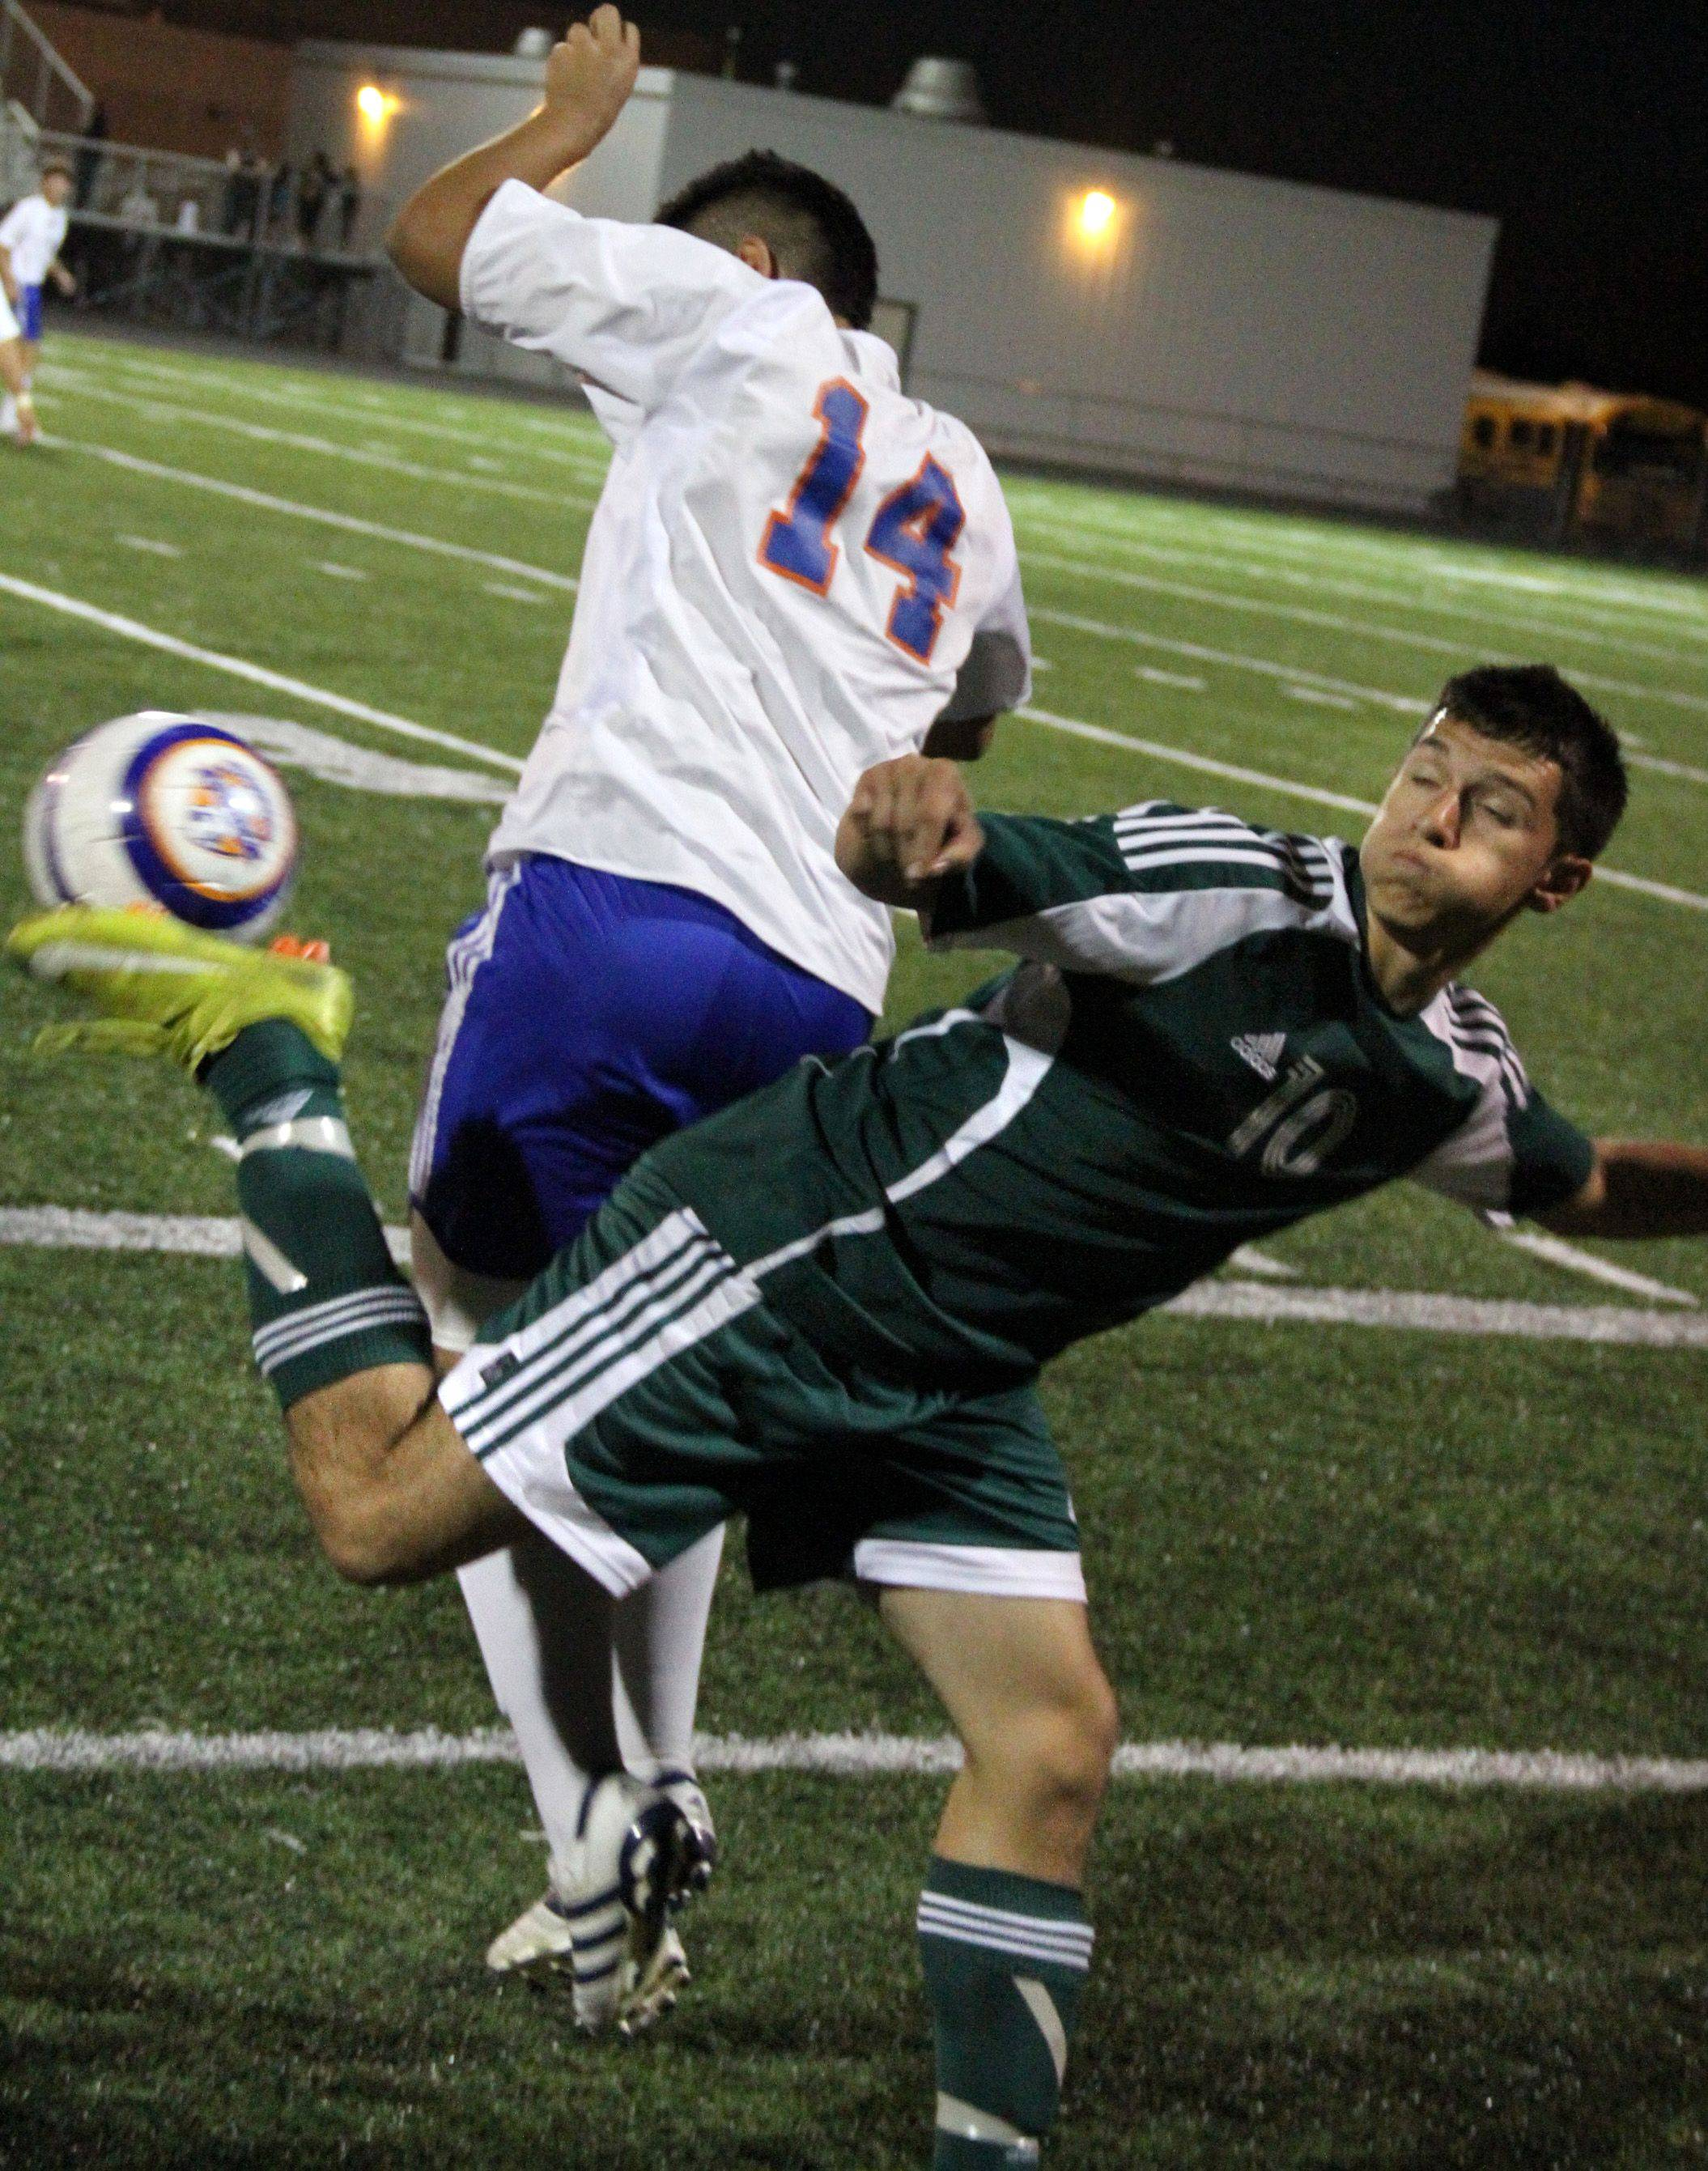 Elk Grove's Cesar Rodriguez kicks the ball from behind as he battles Hoffman Estates' Gilberto Cuellar for position Thursday.